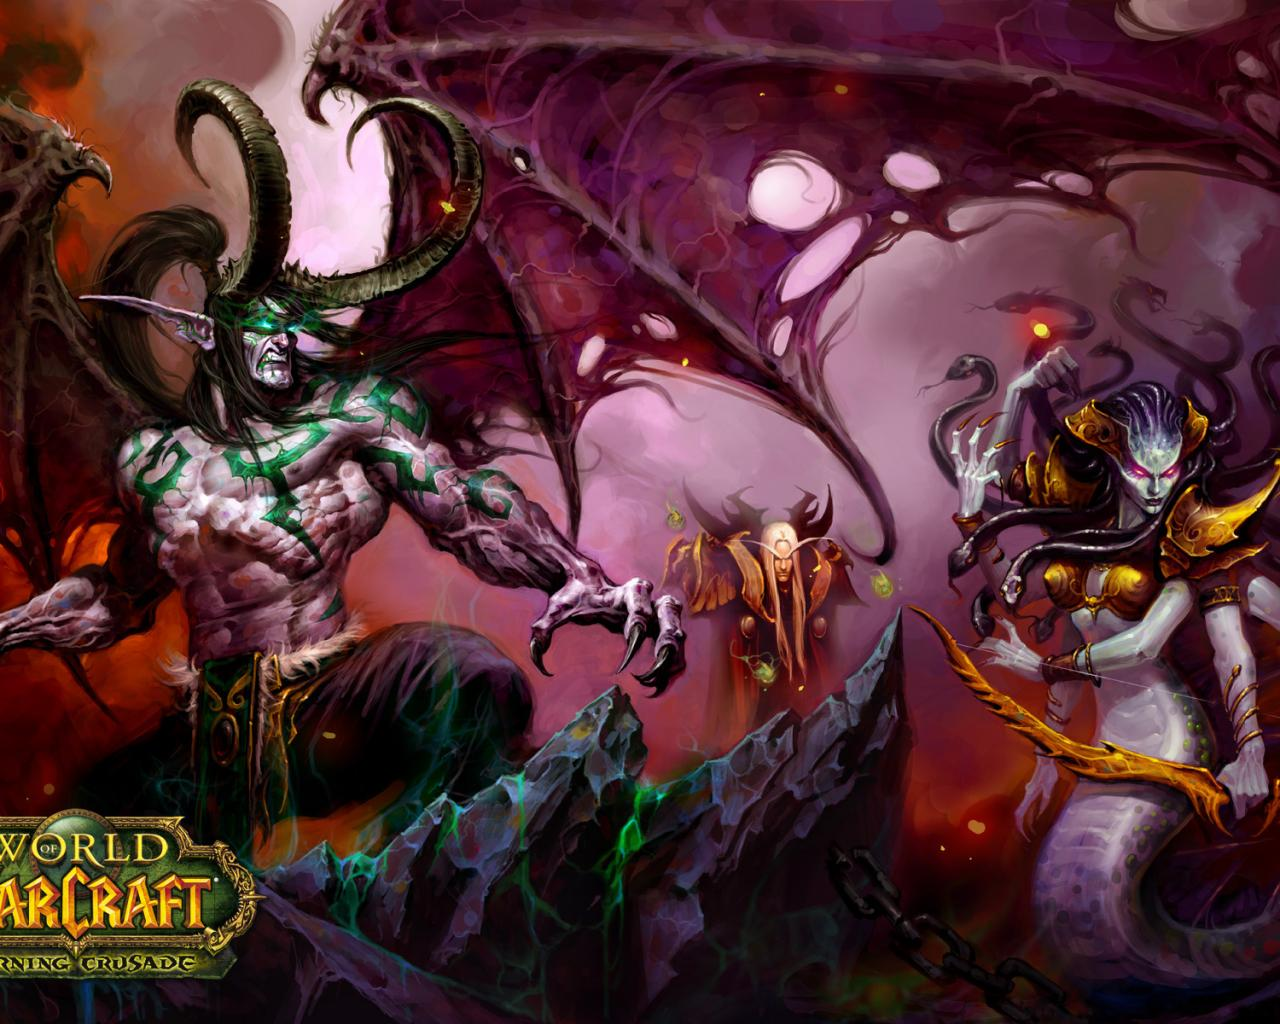 Игры, warcraft, world of warcraft, wow 1280x1024